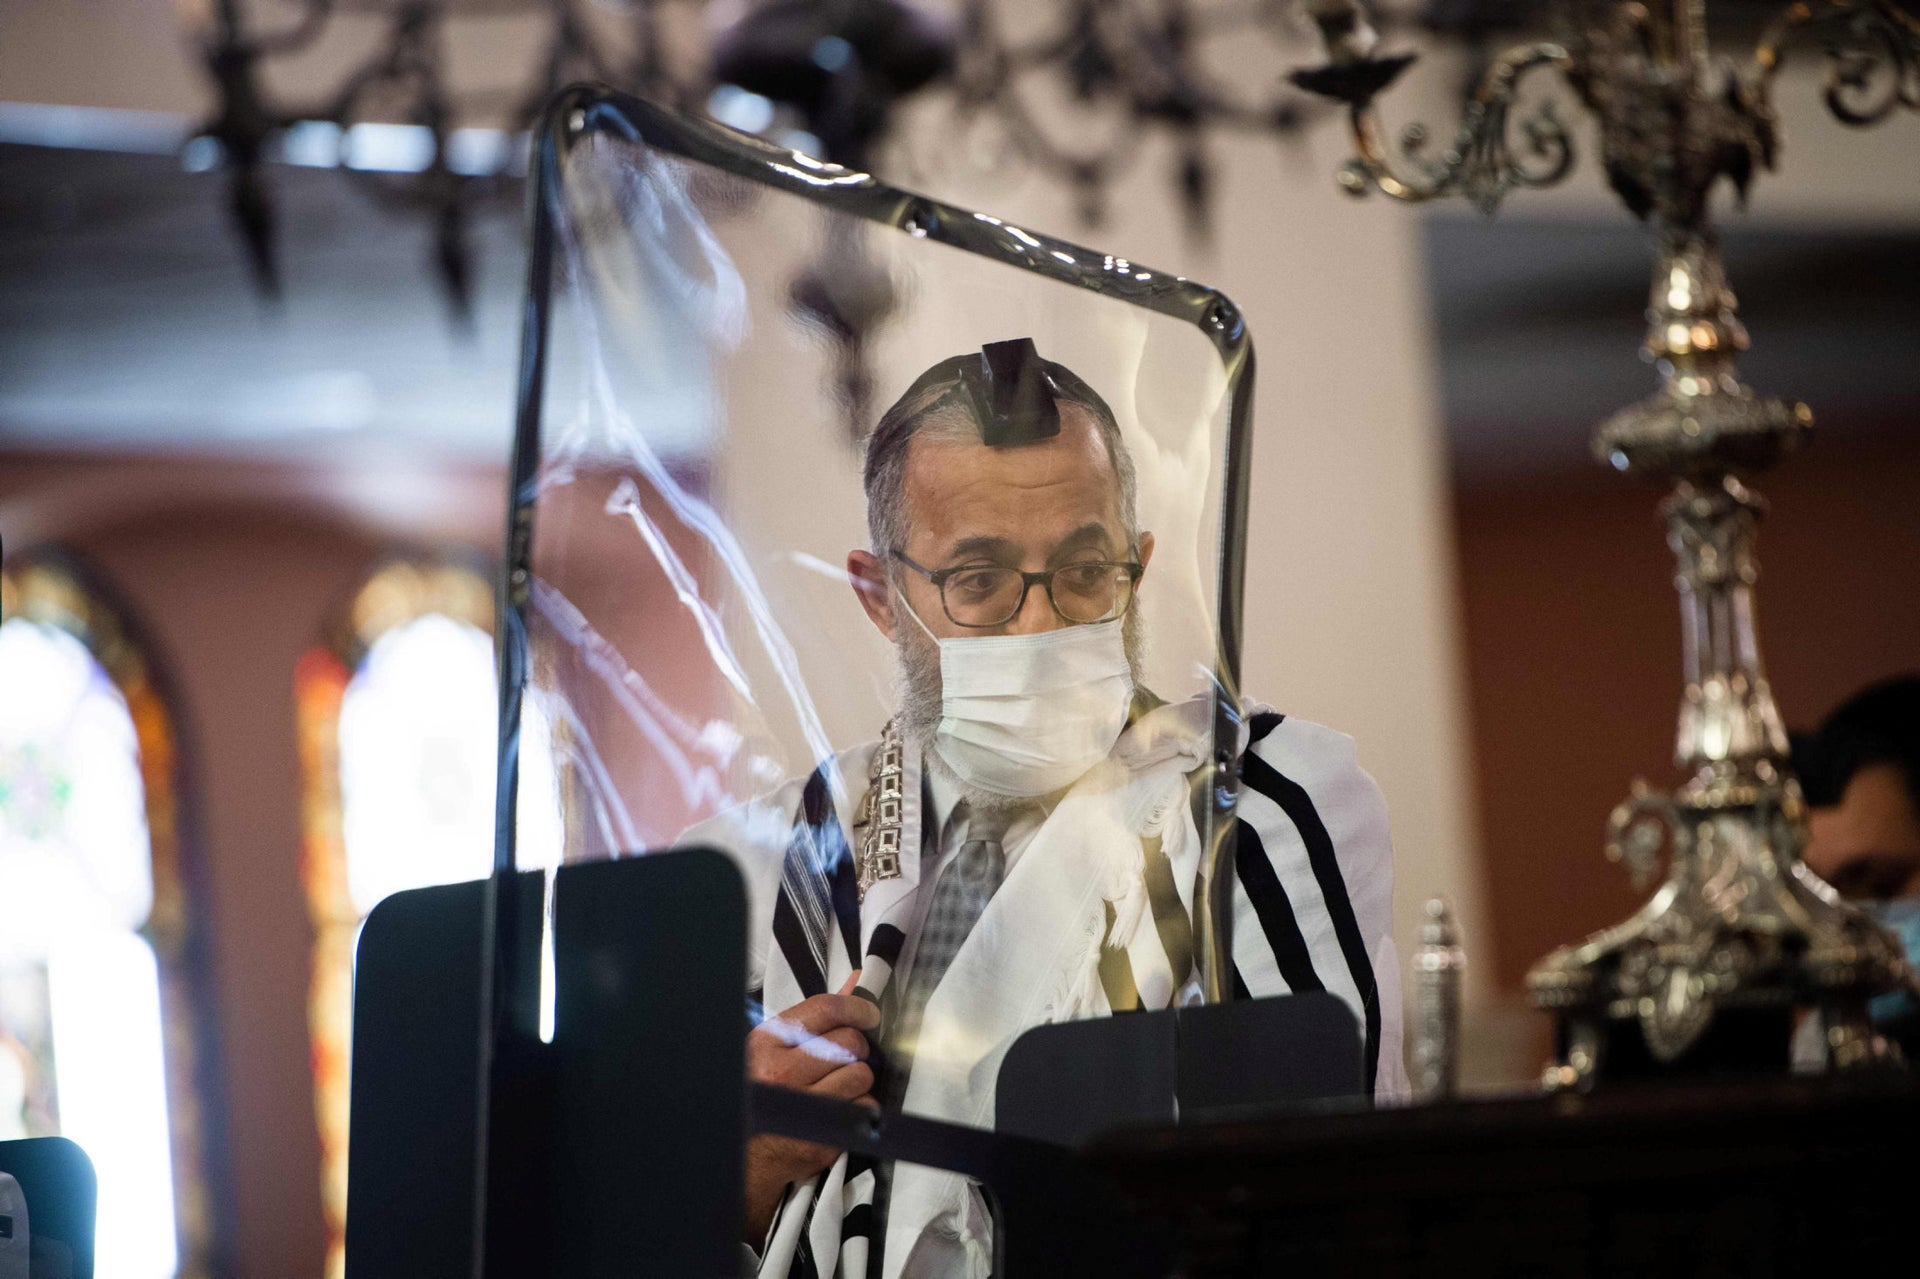 An illustrative photo showing the chief rabbi of Marseille, Ruben Ohana, during a morning public prayer at The Great Synagogue of Marseille, May 28, 2020.